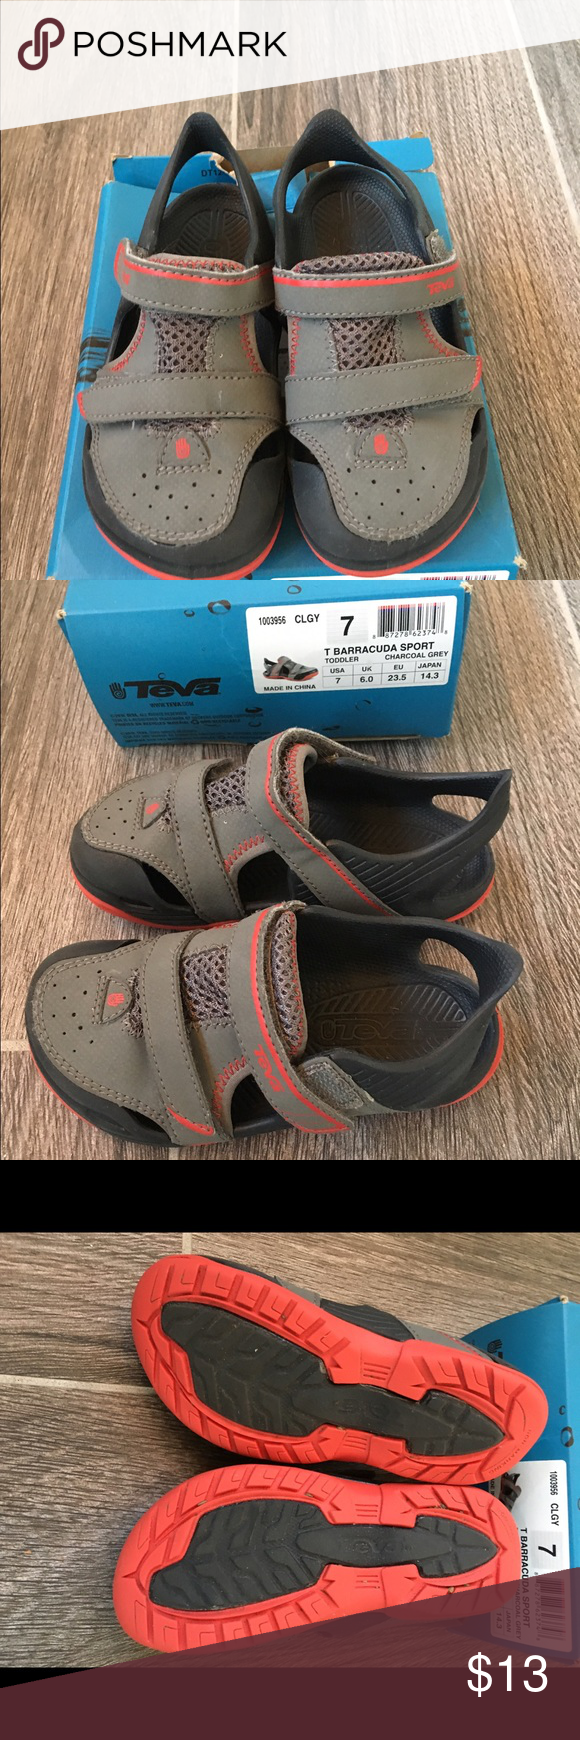 Teva Baracudda Sport grey water sandals. Sz 7 Teva Barracuda Sport water sandals in charcoal grey. Size 7 baby. Gently worn, good condition. Can be worn in water. Comes with box as shown, box has a rip at opening. Teva Shoes Water Shoes